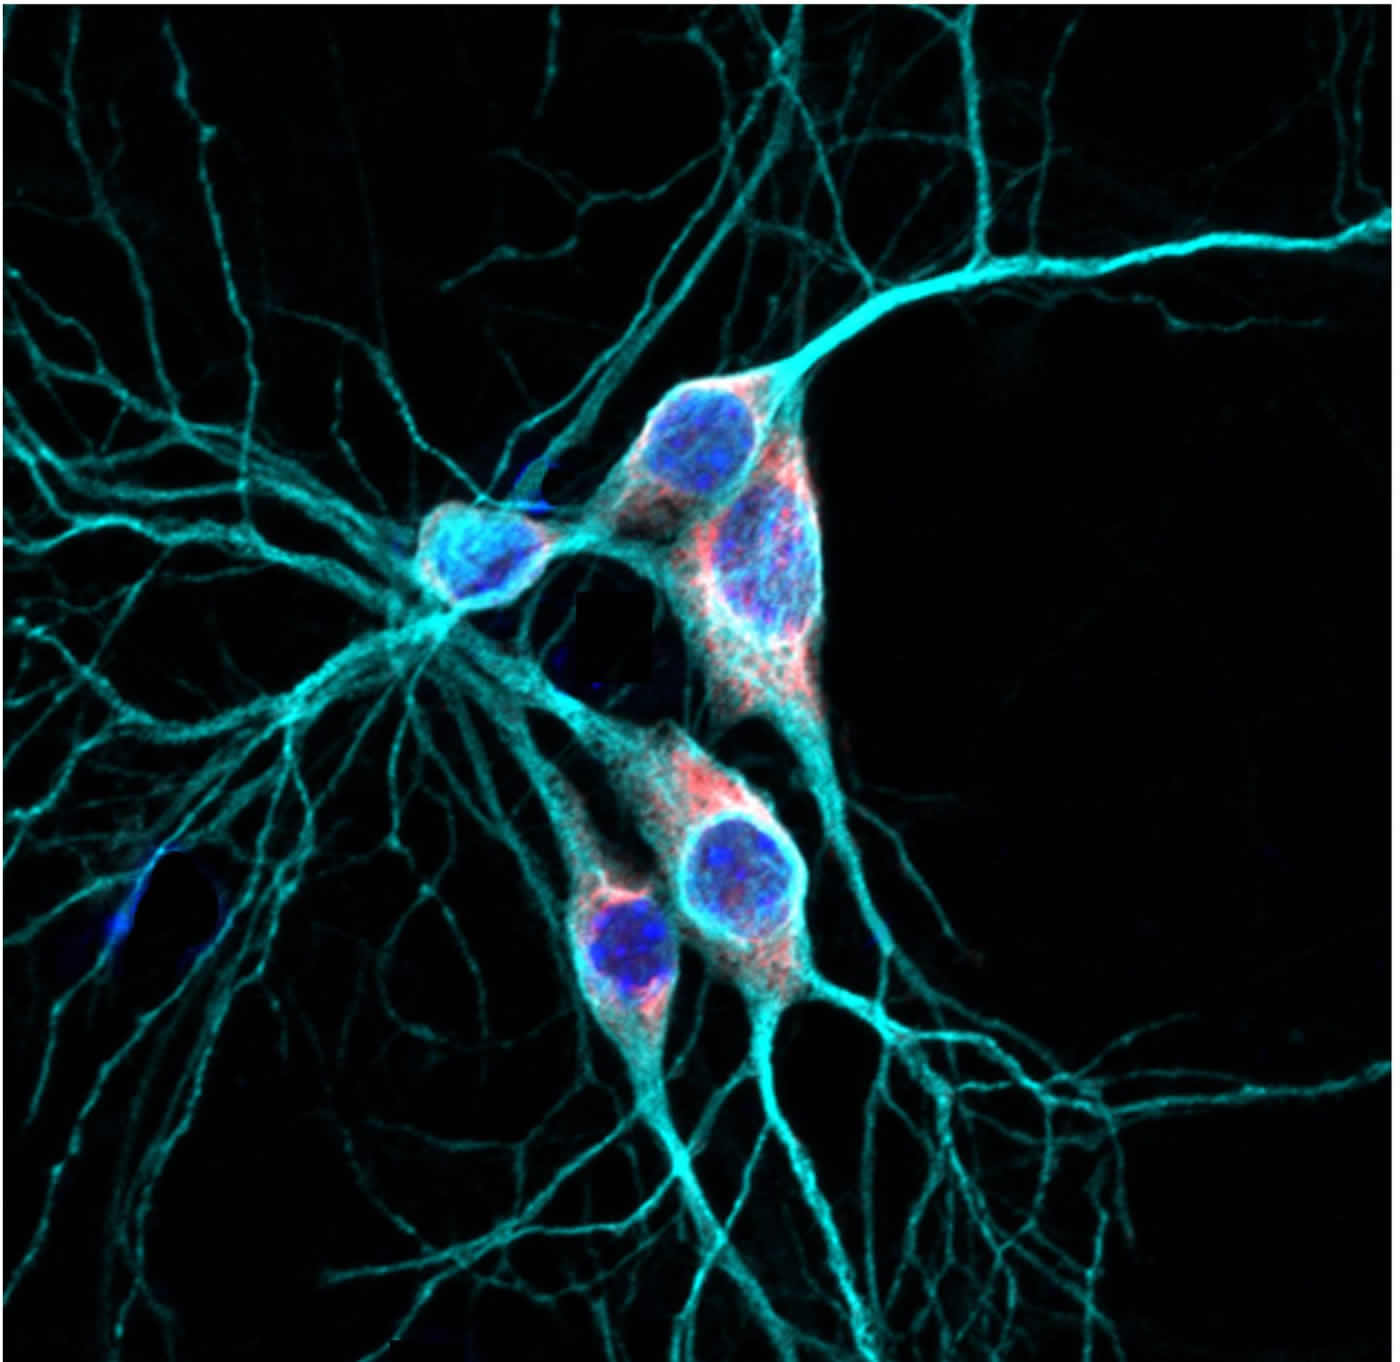 Shedding Light on How Genetic Mutations May Lead to Autism